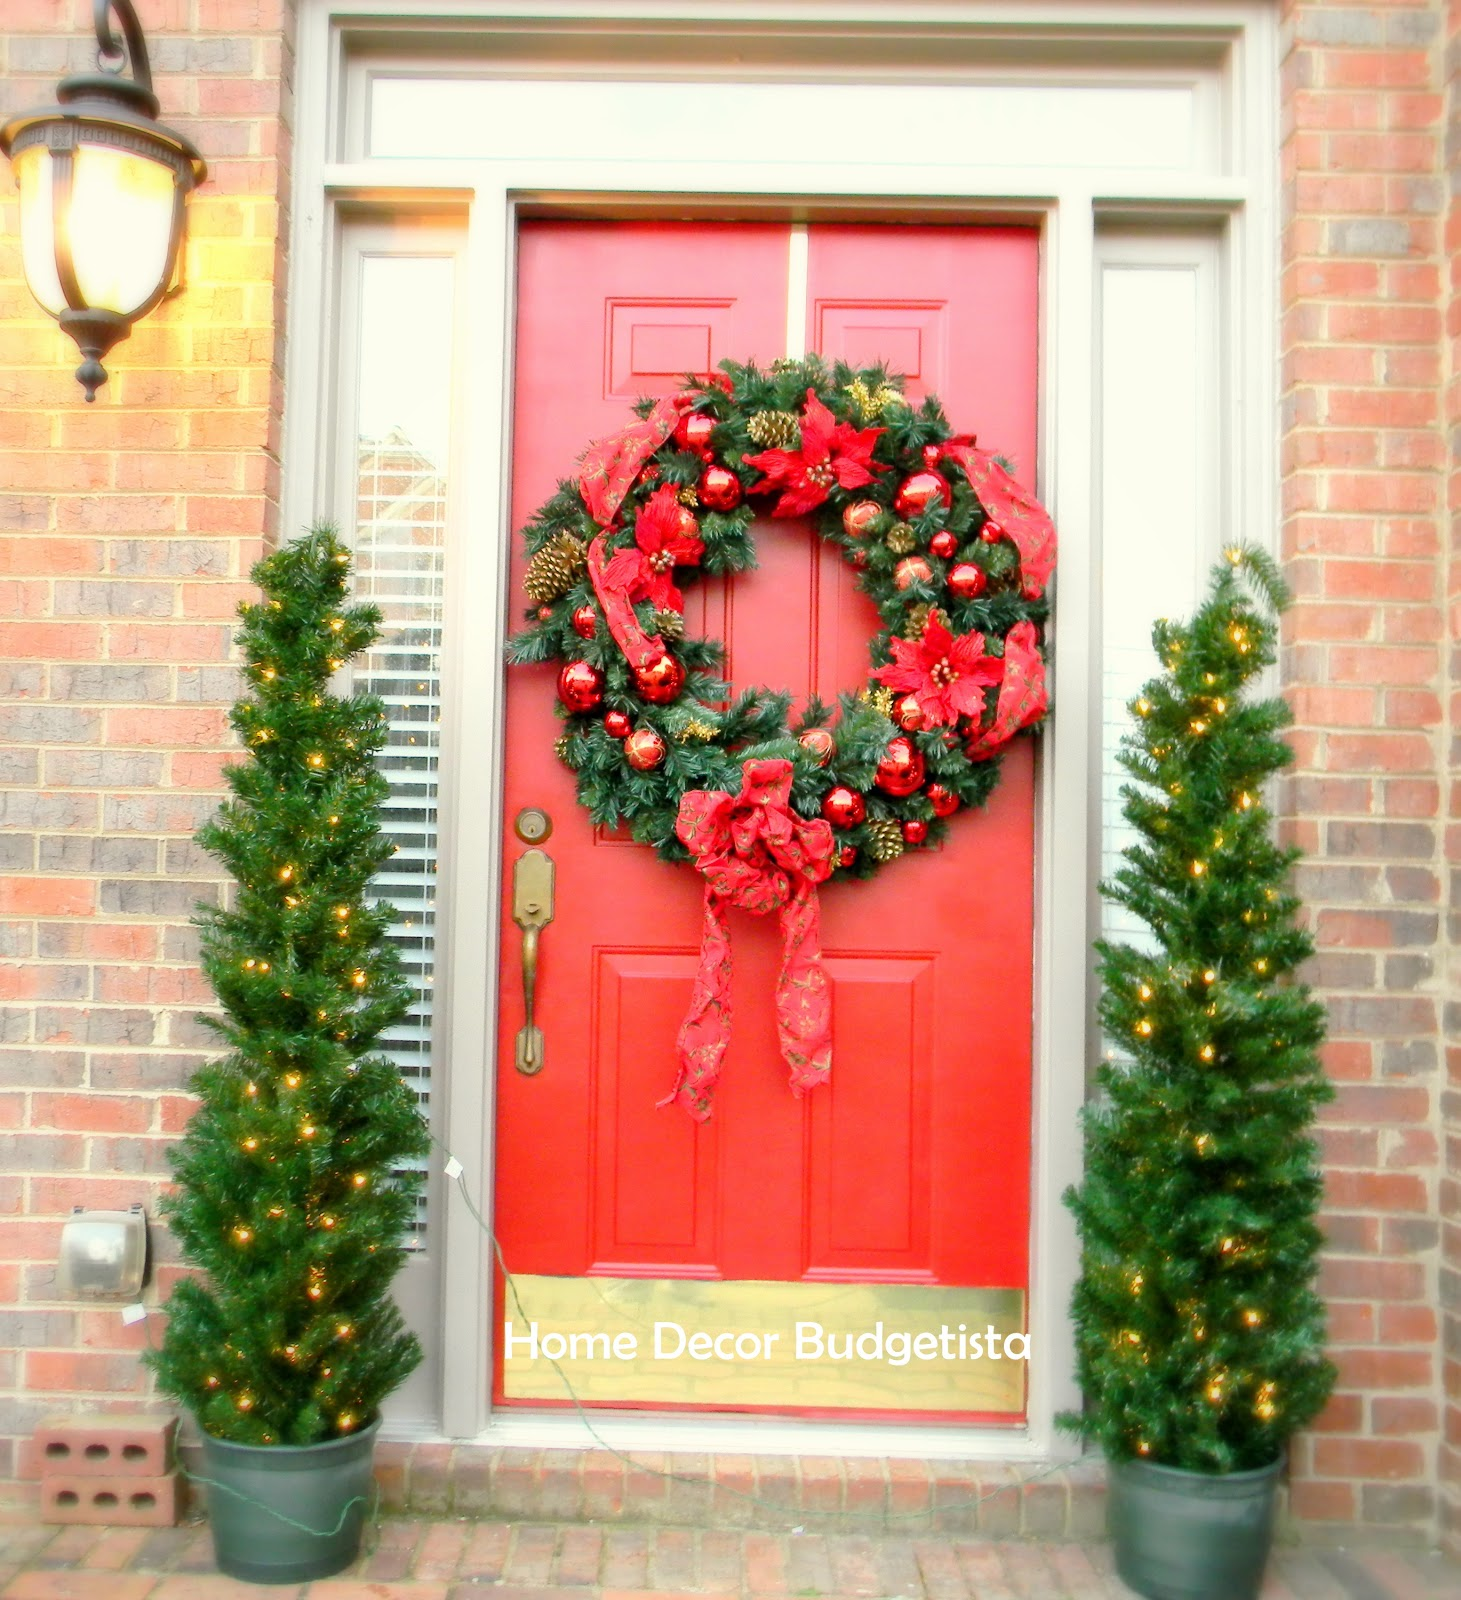 Home decor budgetista christmas decorations for Door xmas decoration ideas